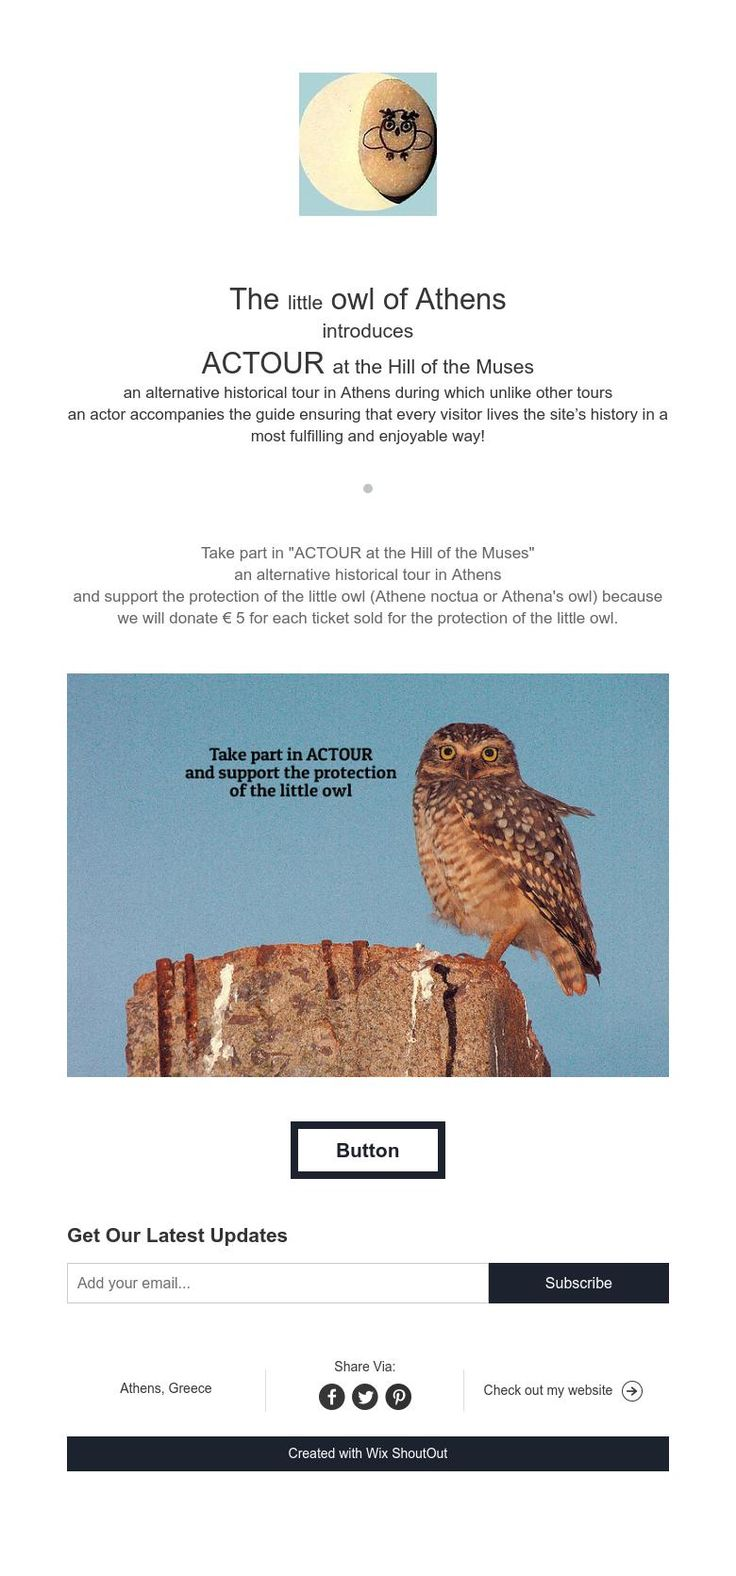 The little owl of Athens  introduces  ACTOUR at the Hill of the Muses  an alternative historical tour in Athens during which unlike other tours  an actor accompanies the guide ensuring that every visitor lives the site's history in a most fulfilling and enjoyable way!